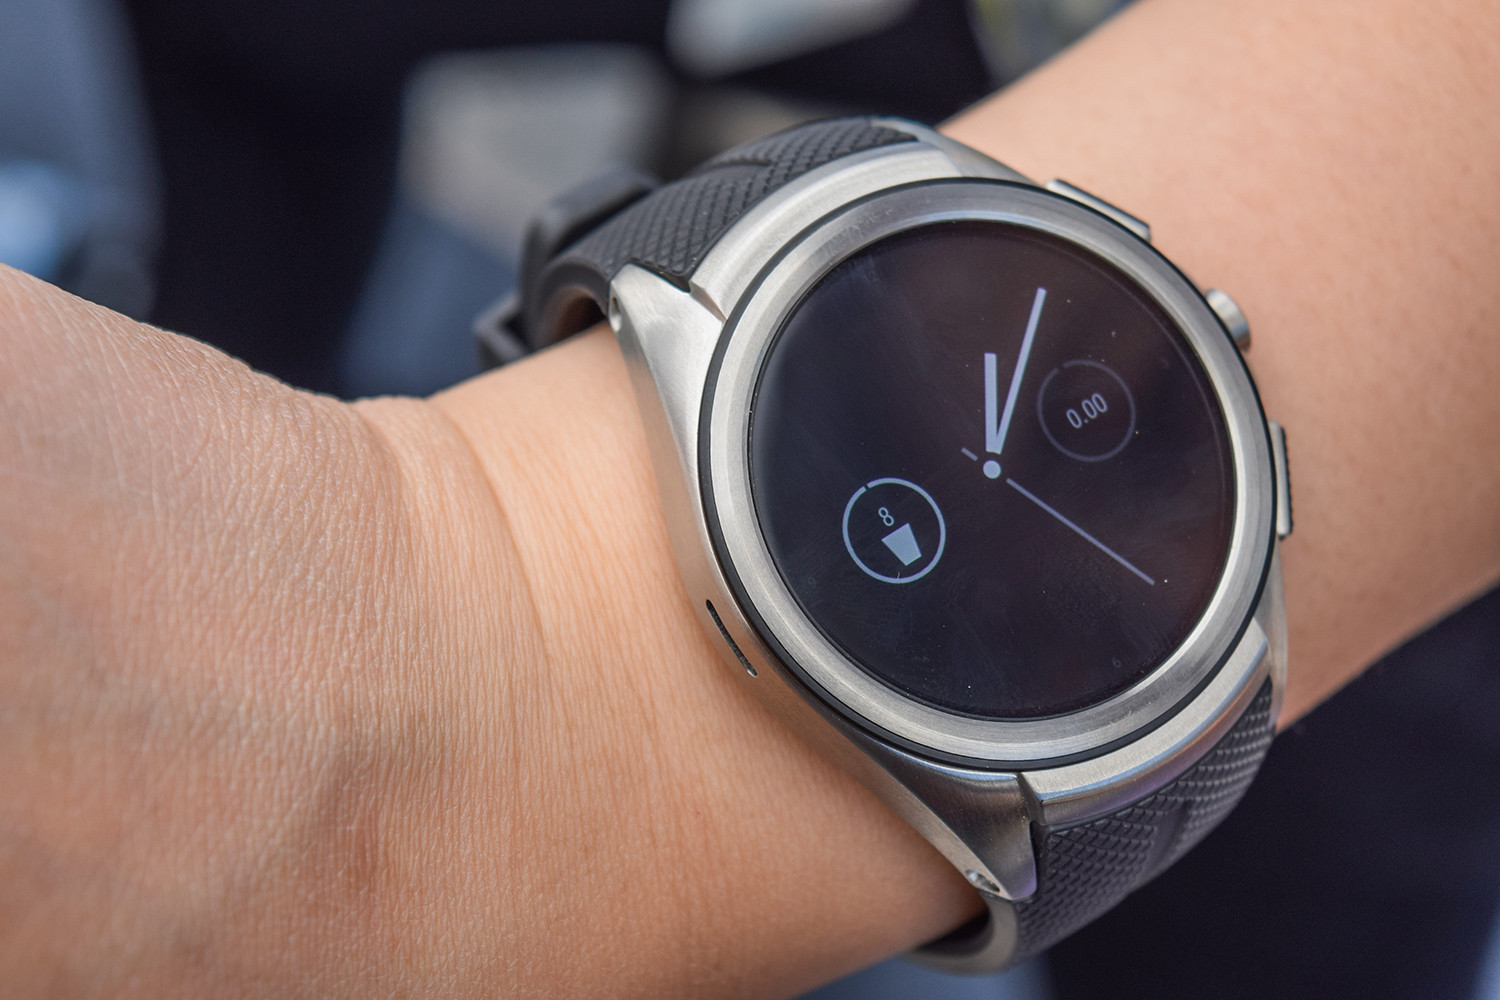 Google confirms two Android Wear smartwatches will launch in early 2017